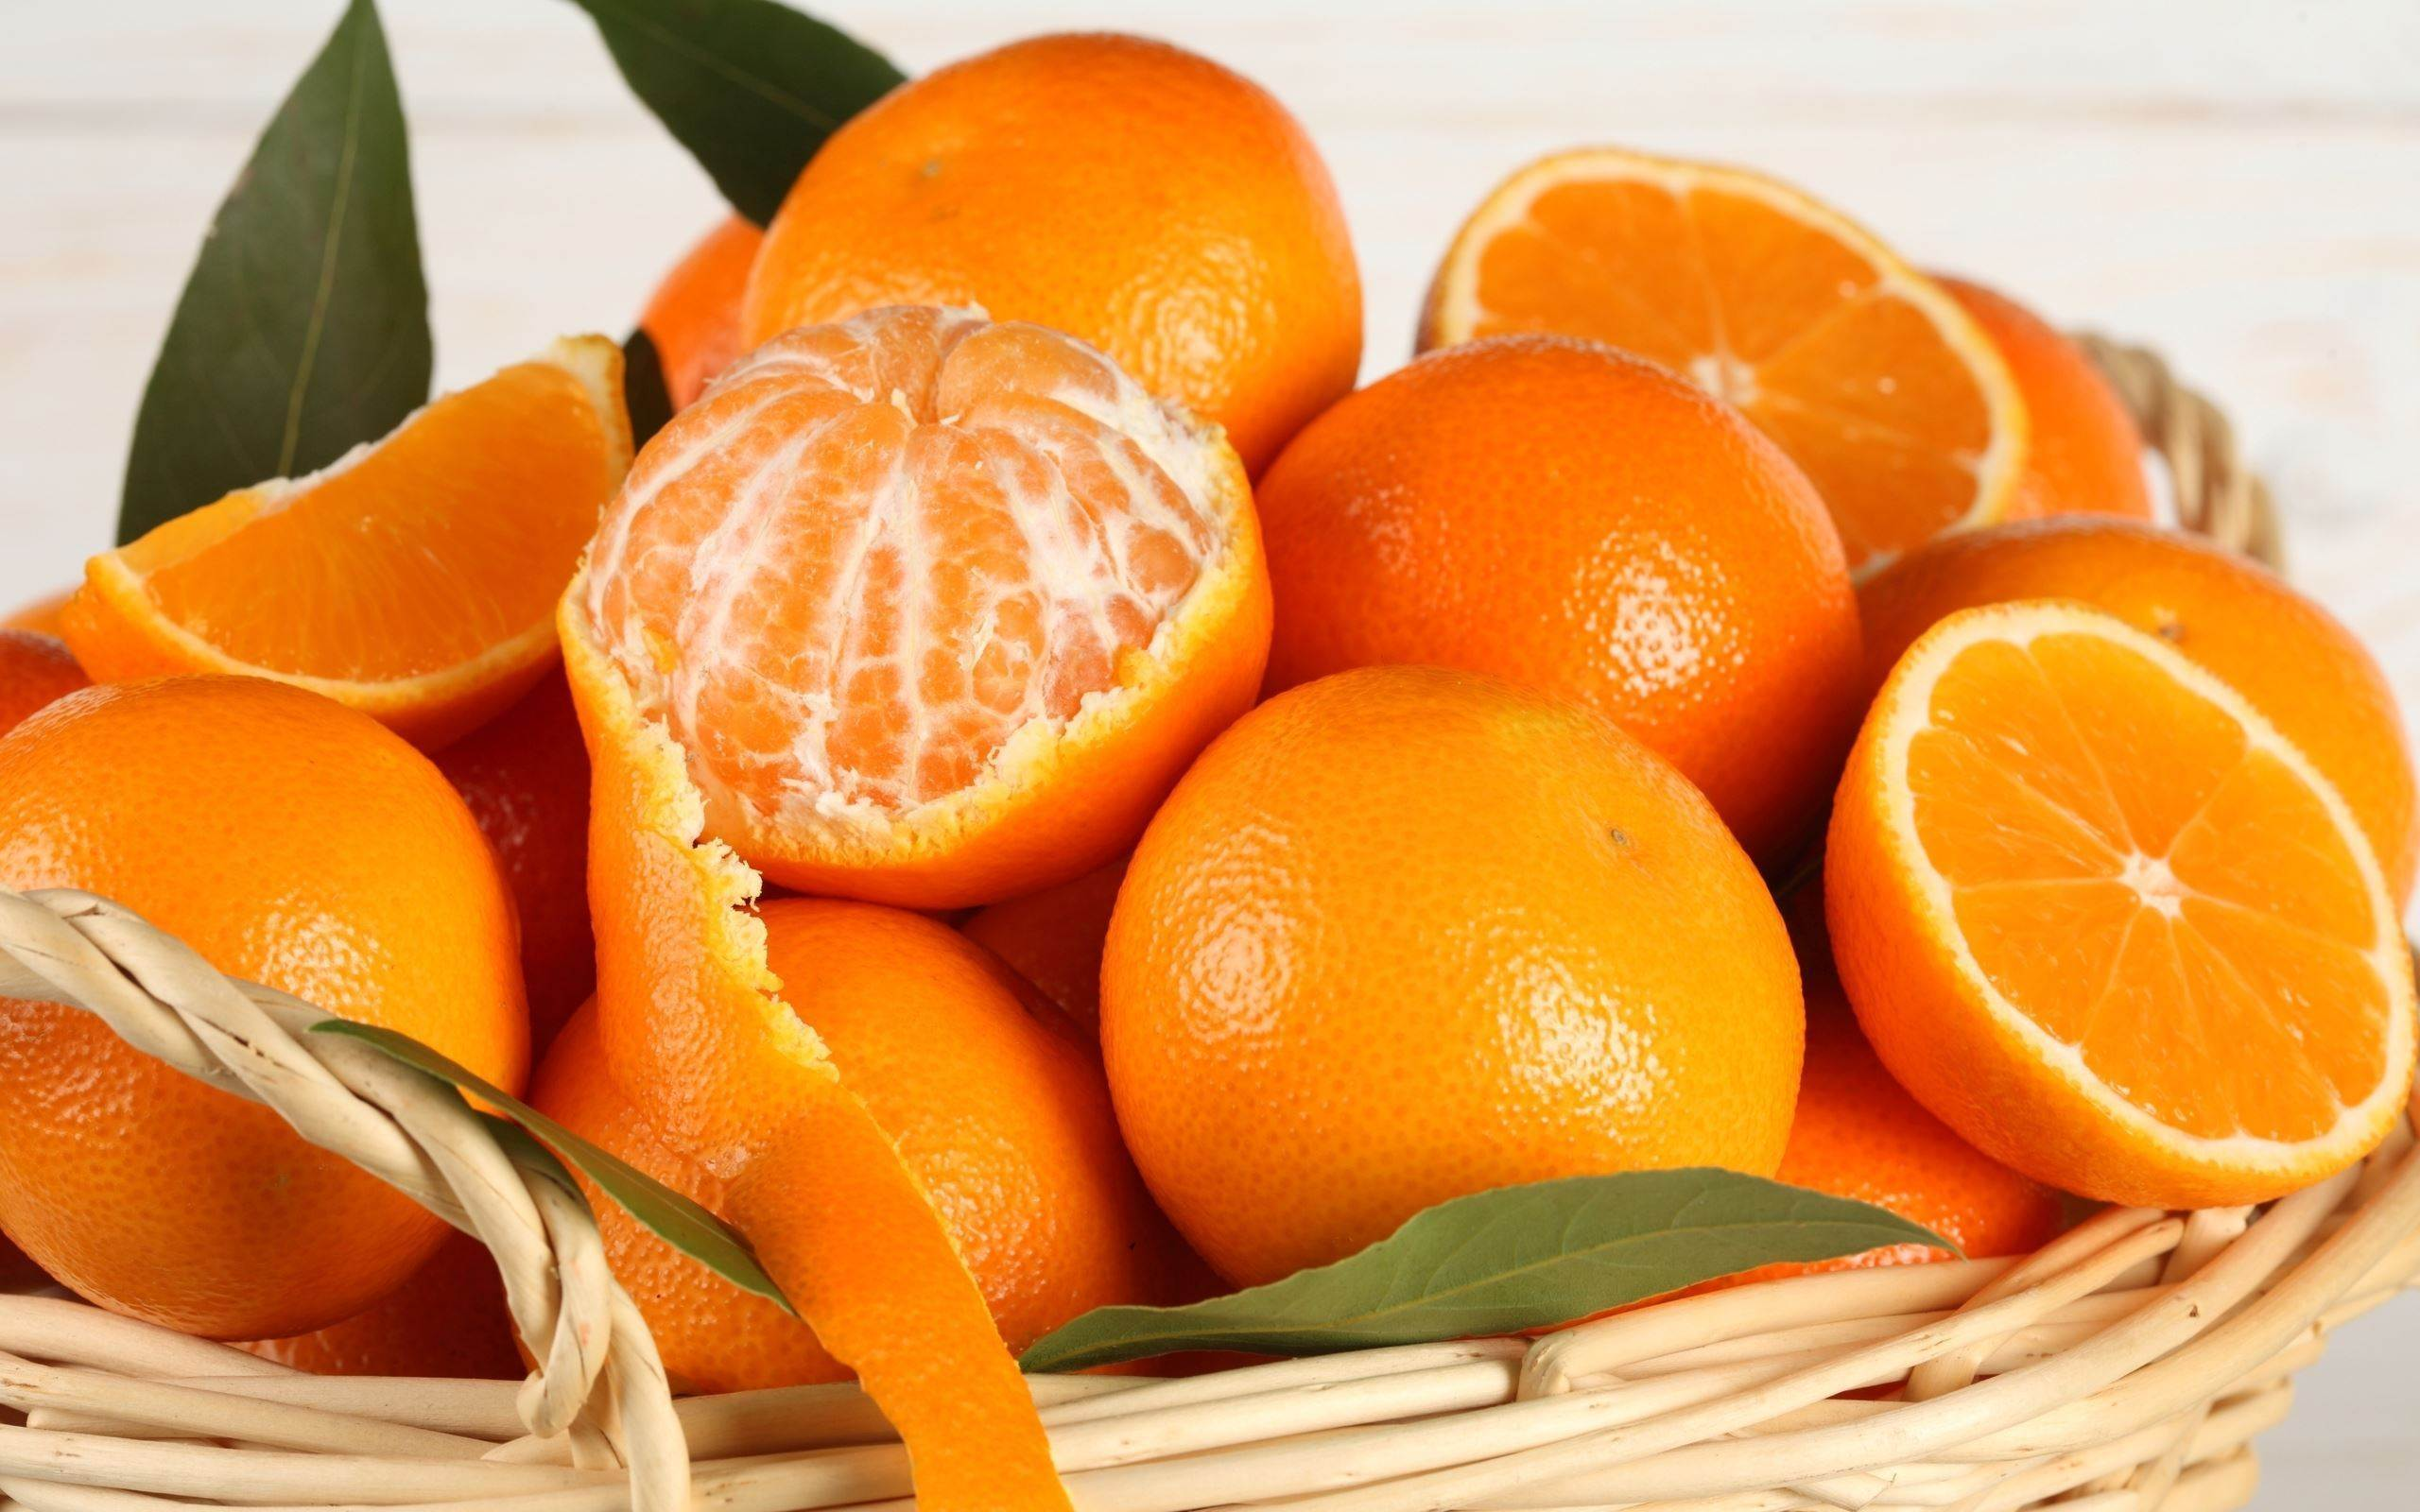 Fruits Hd Wallpapers Fruits Images Hd Png Free